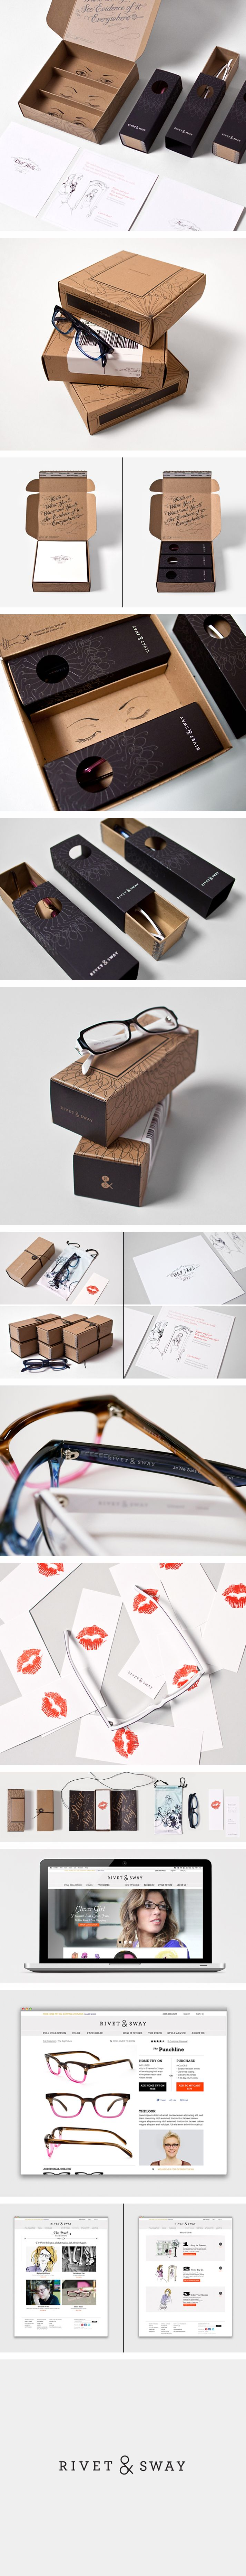 Rivet & Sway.. great identity  we might do a box that opens like this with printing on the inside